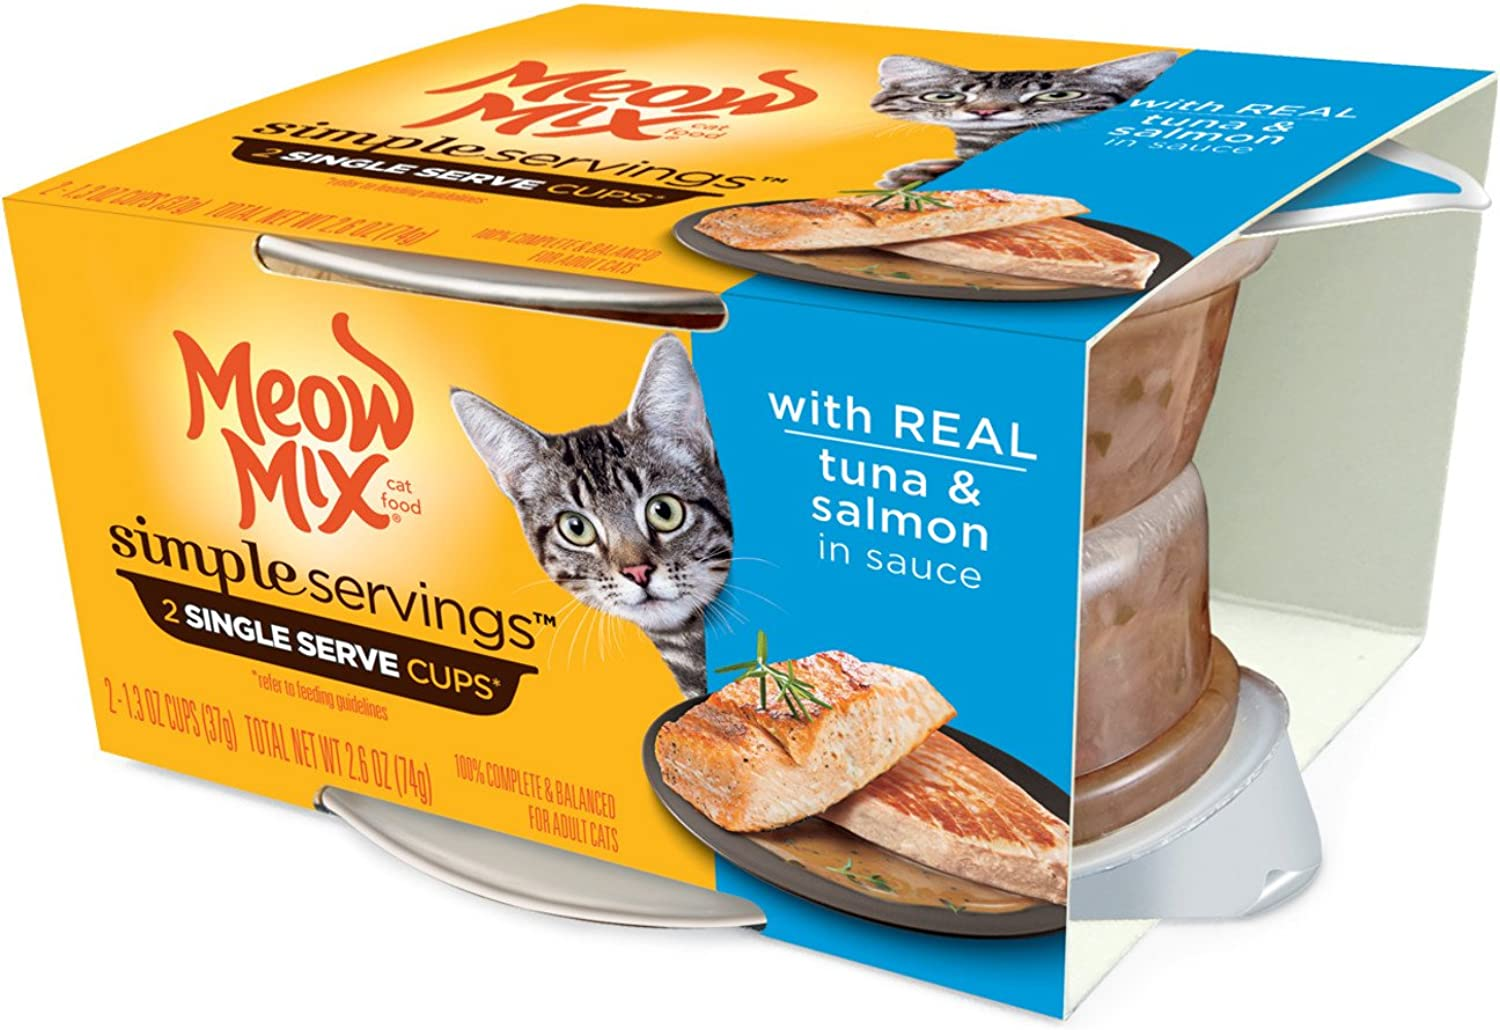 Meow Mix Simple Servings Wet Cat Food with Real Tuna and Salmon in Sauce, 1.3 Oz Cups (Pack of 24 Cups)